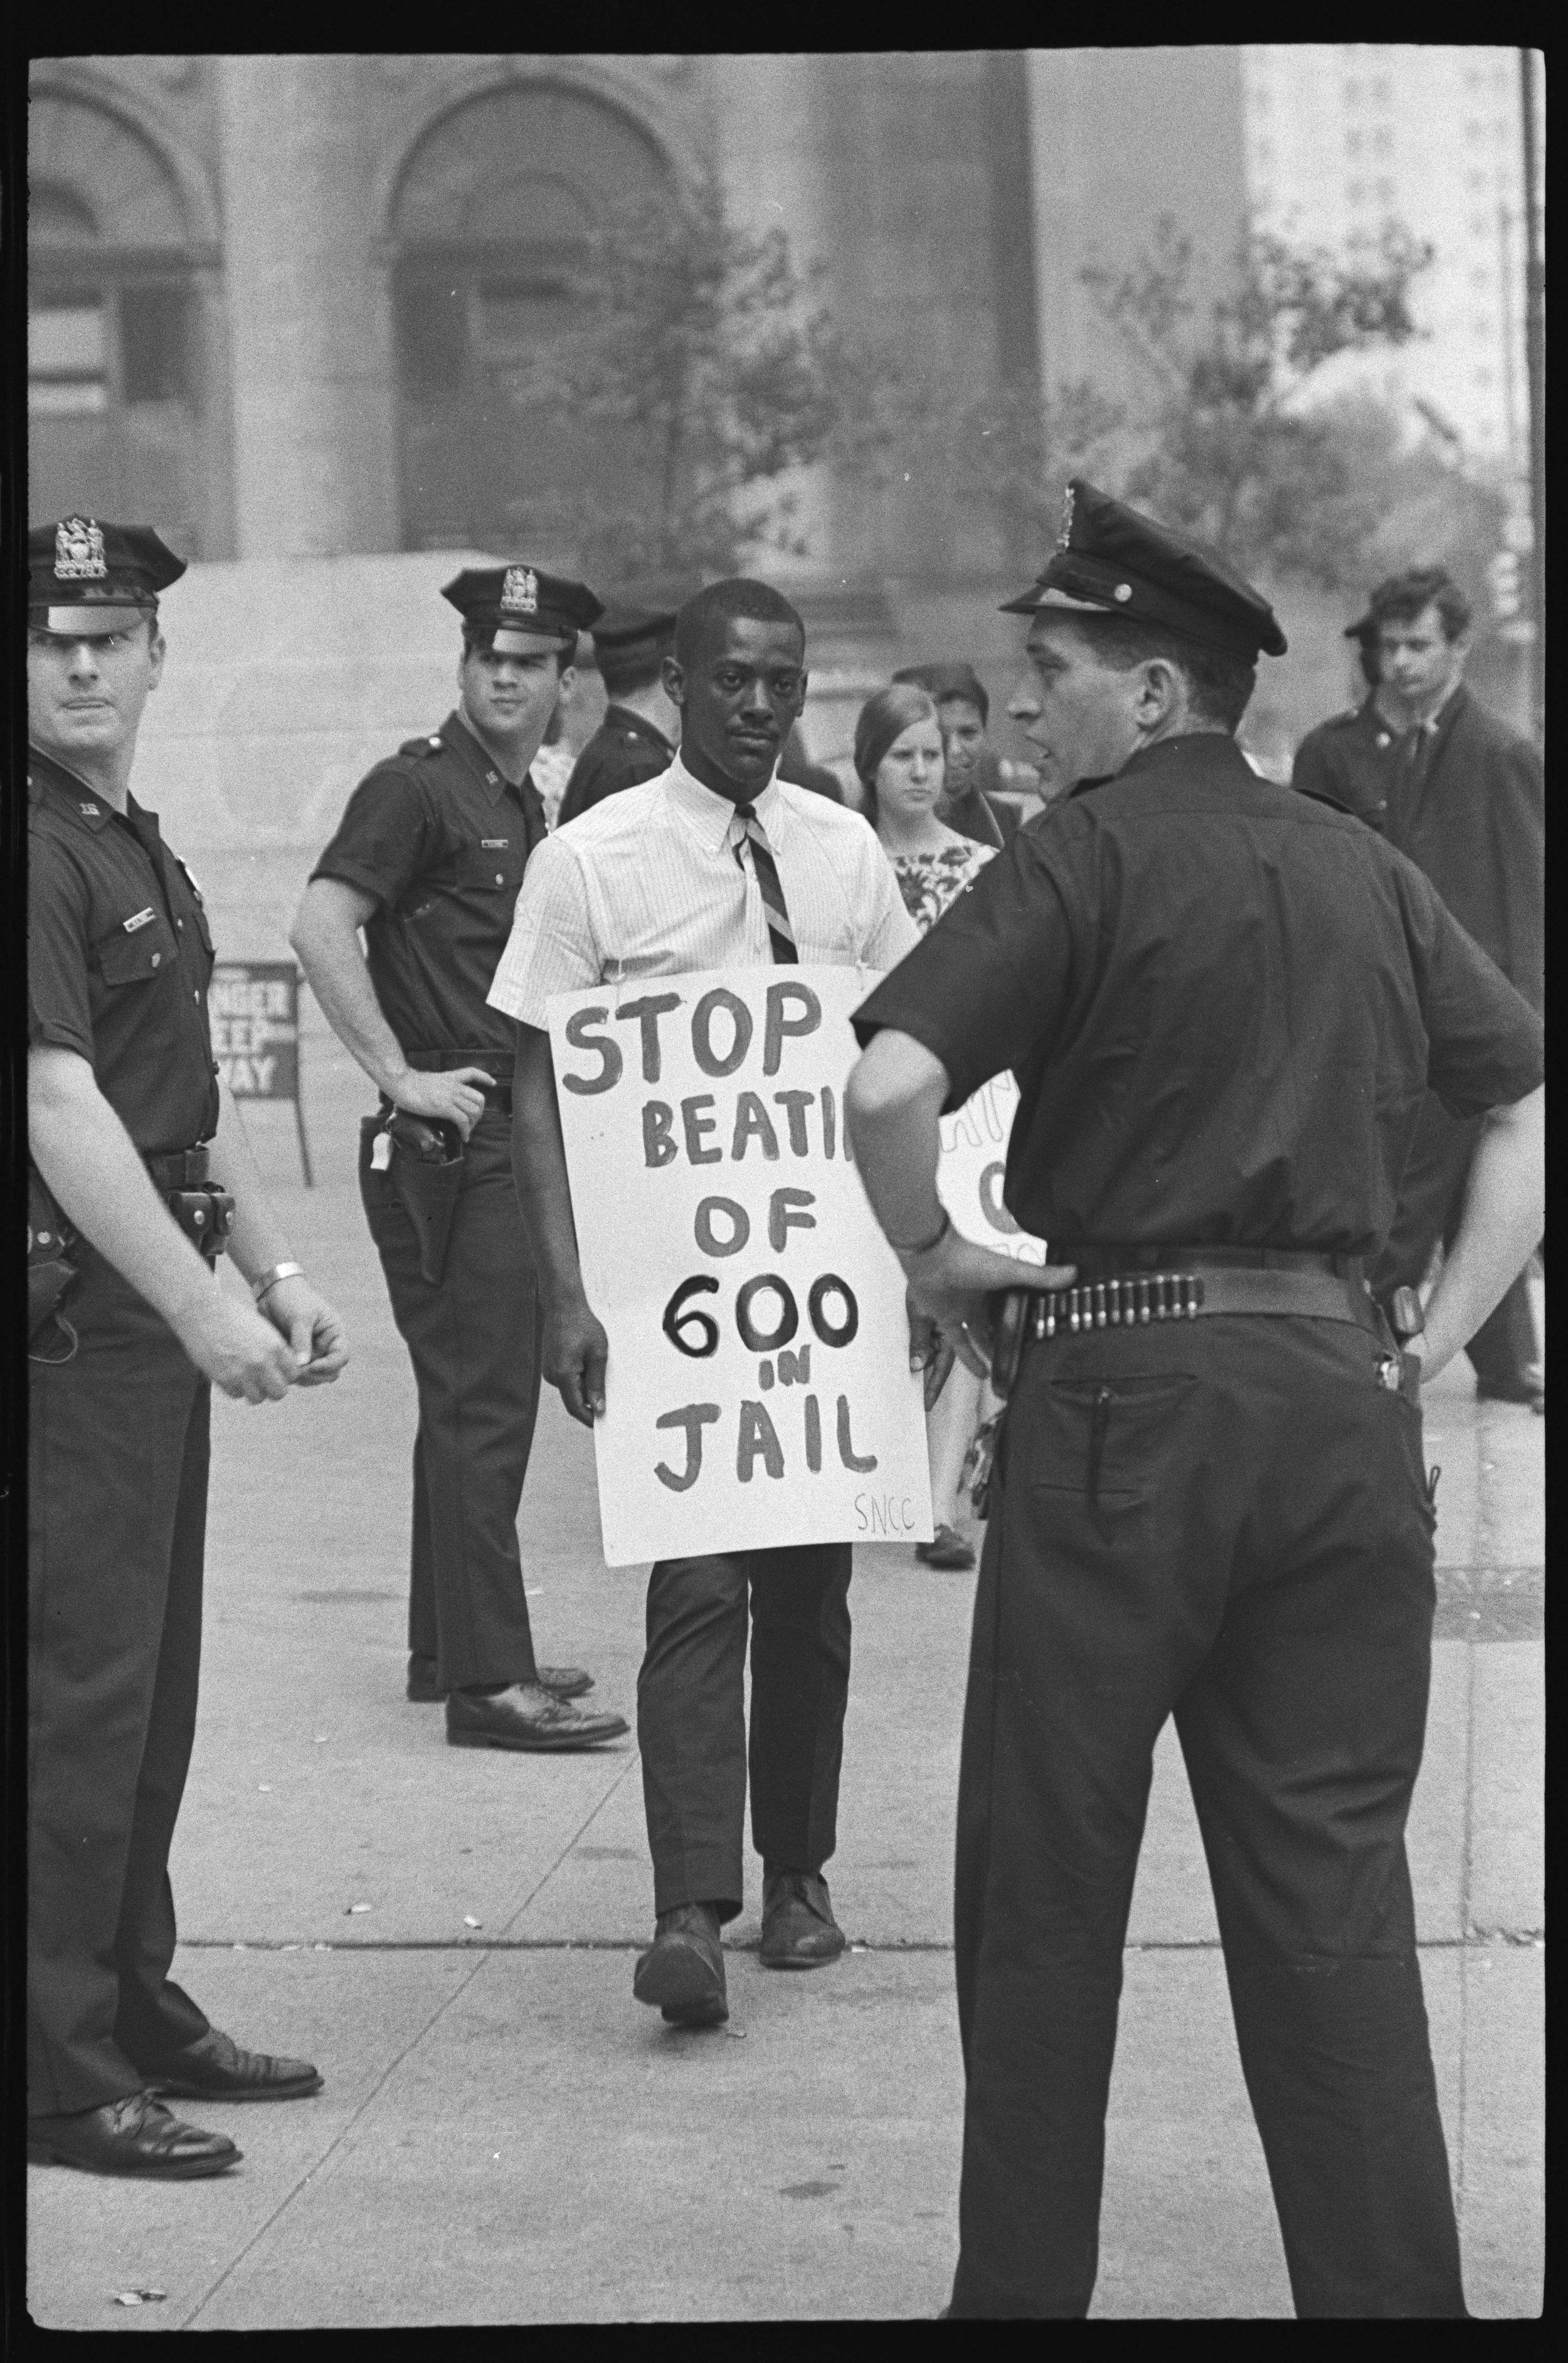 Picketing by CORE and SNCC in front of Federal Court - Foley Square, June 23, 1965